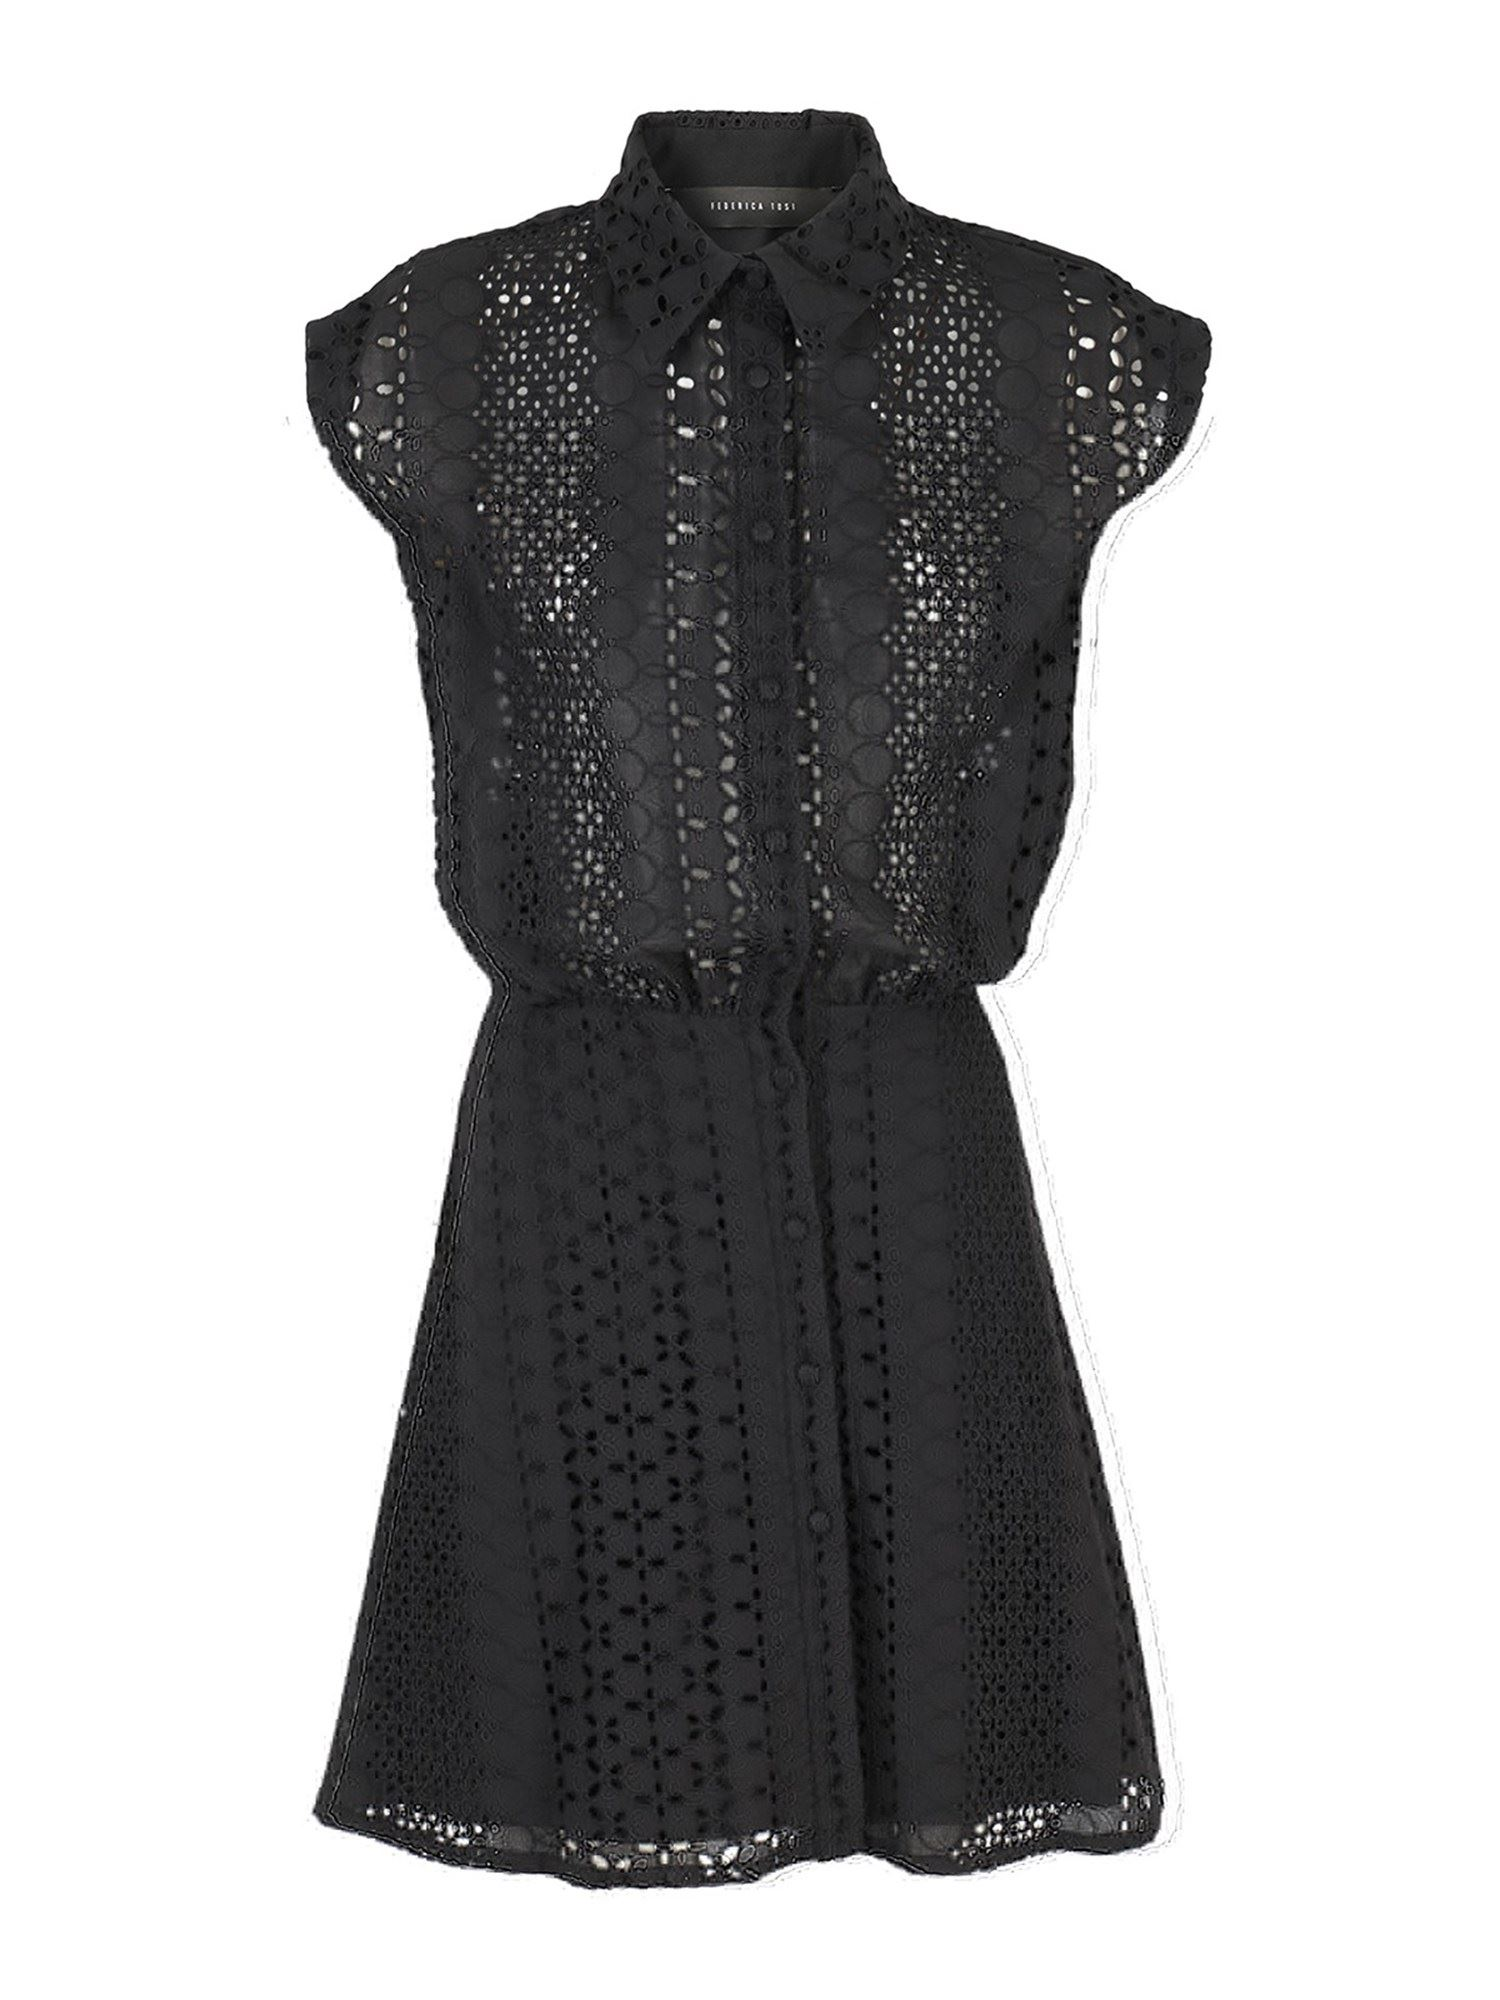 Federica Tosi LACE SHIRT DRESS IN BLACK